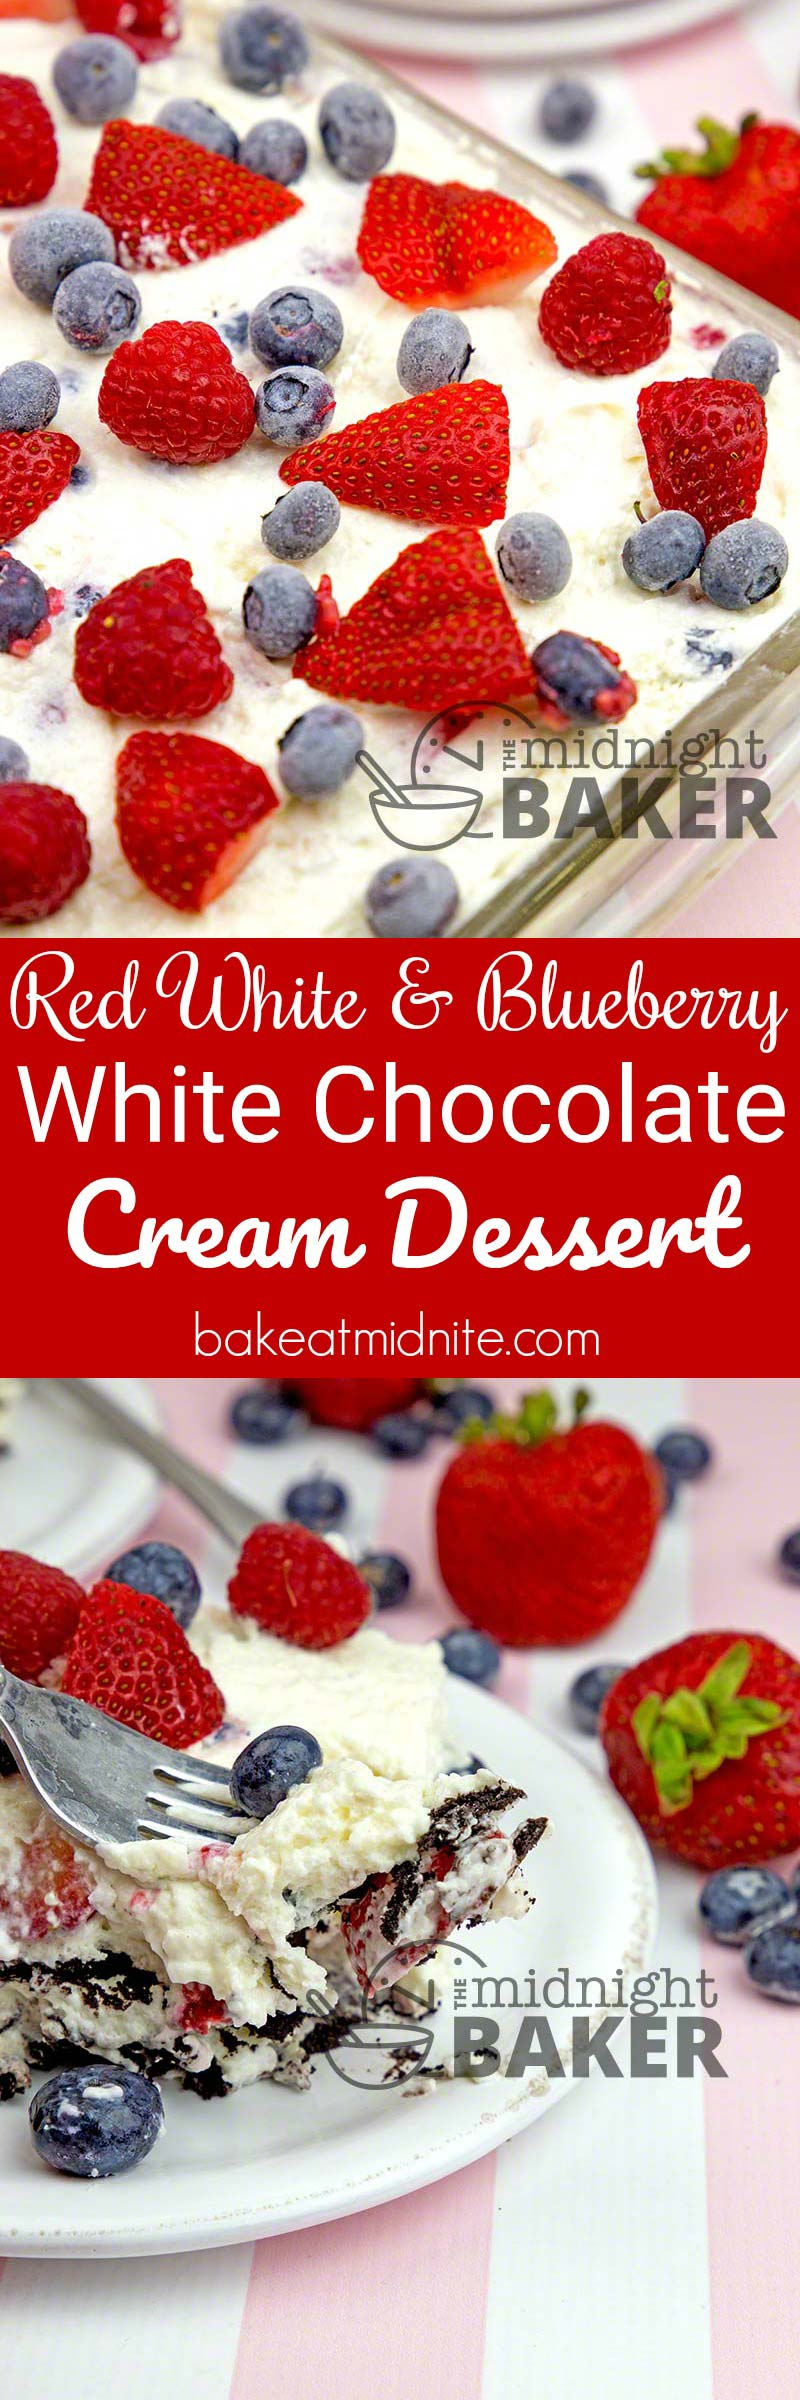 A truly patriotic dessert! Red raspberries, strawberries and blueberries mixed together in a white chocolate creamy filling separated by thin chocolate wafers